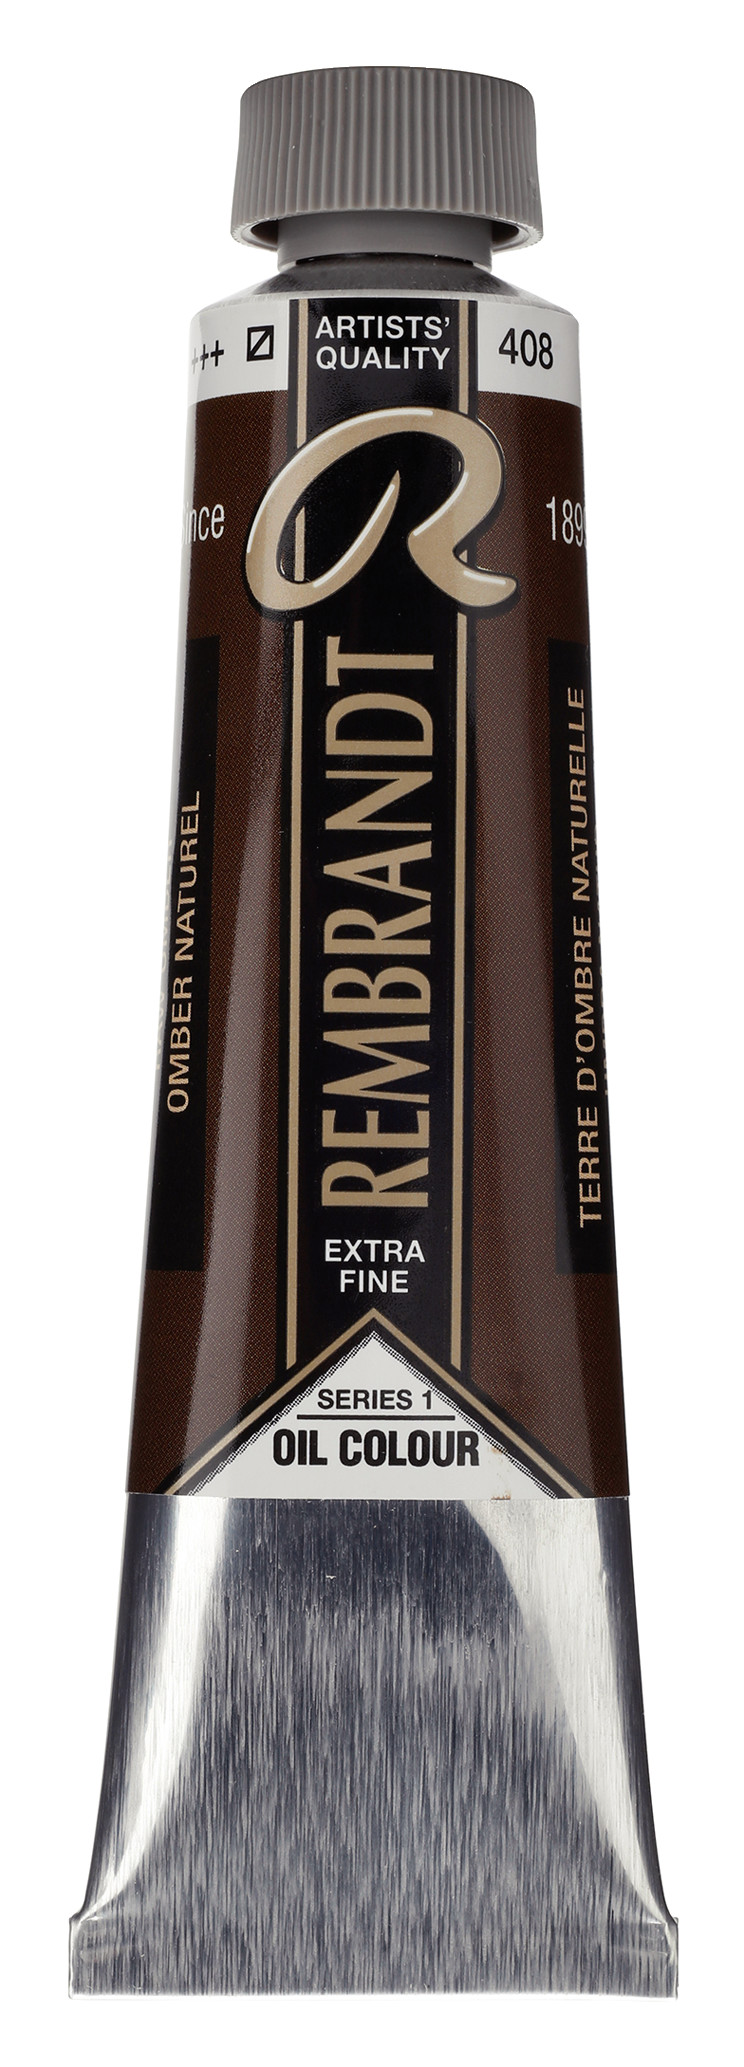 Rembrandt Oil colour Paint Raw Umber (408) 40ml Tube